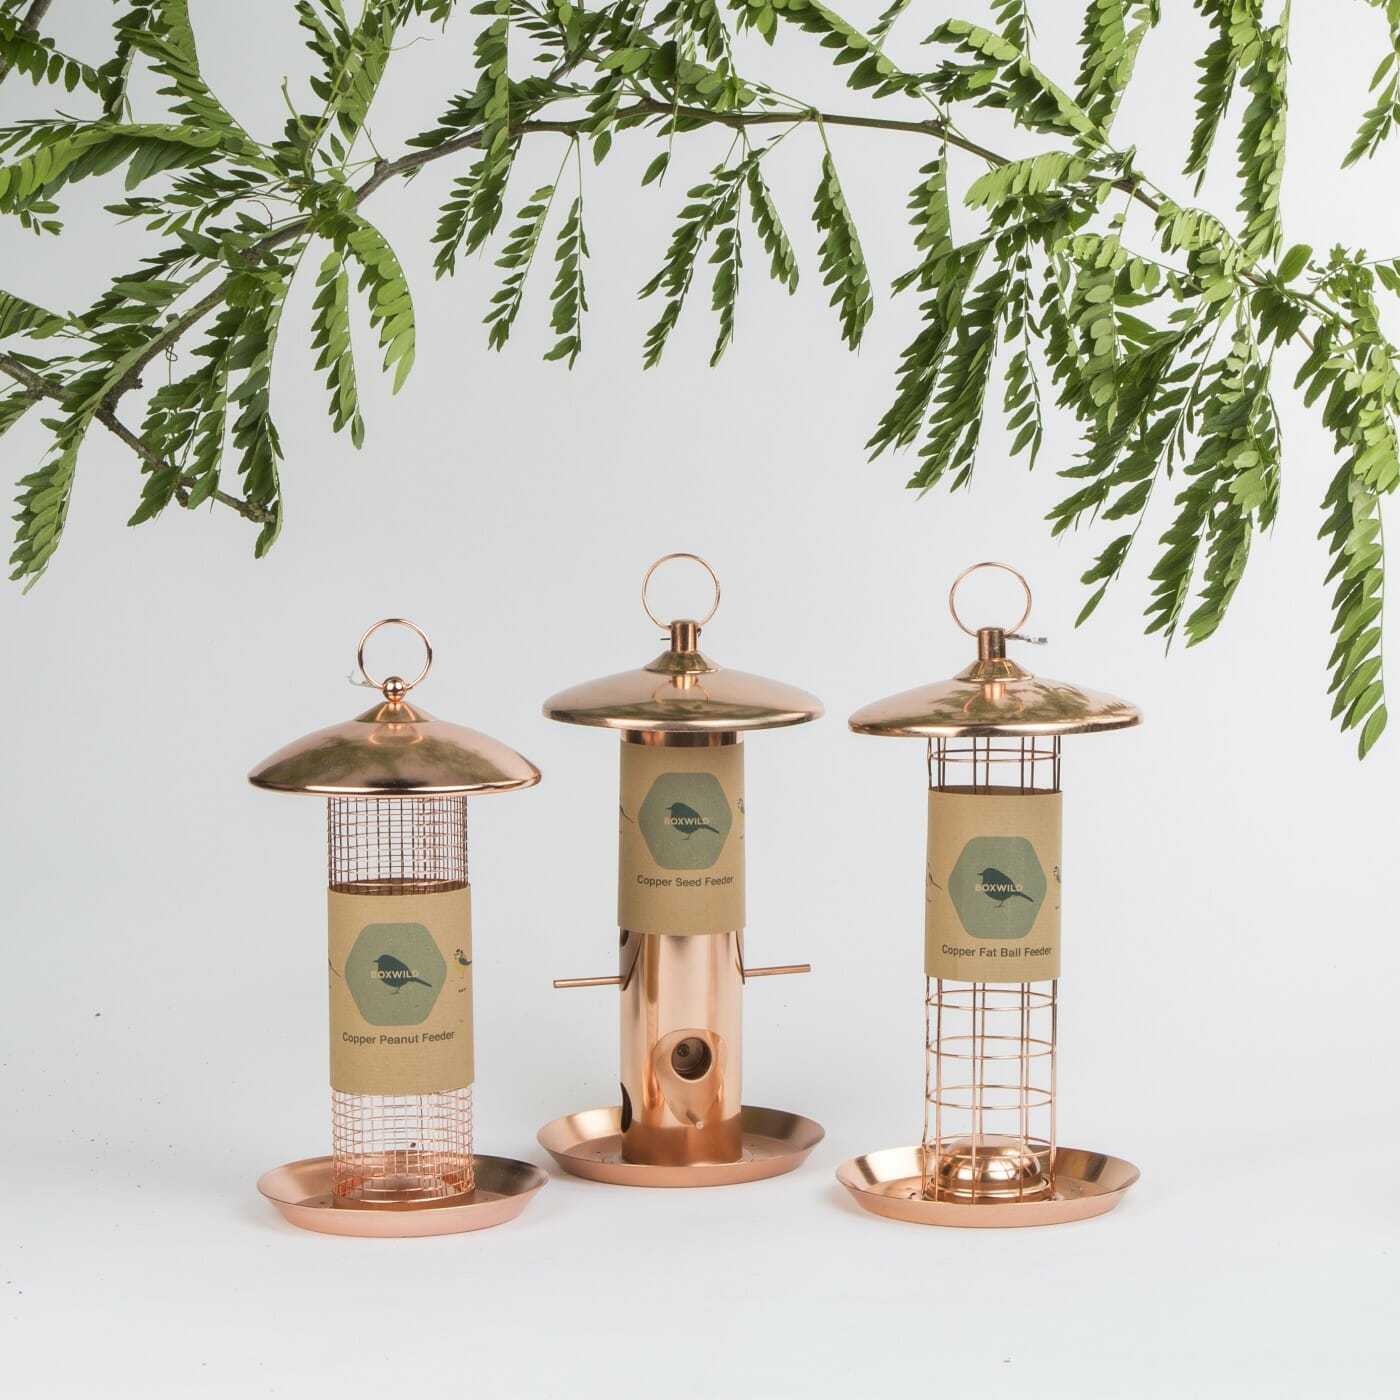 Copper Seed Feeders